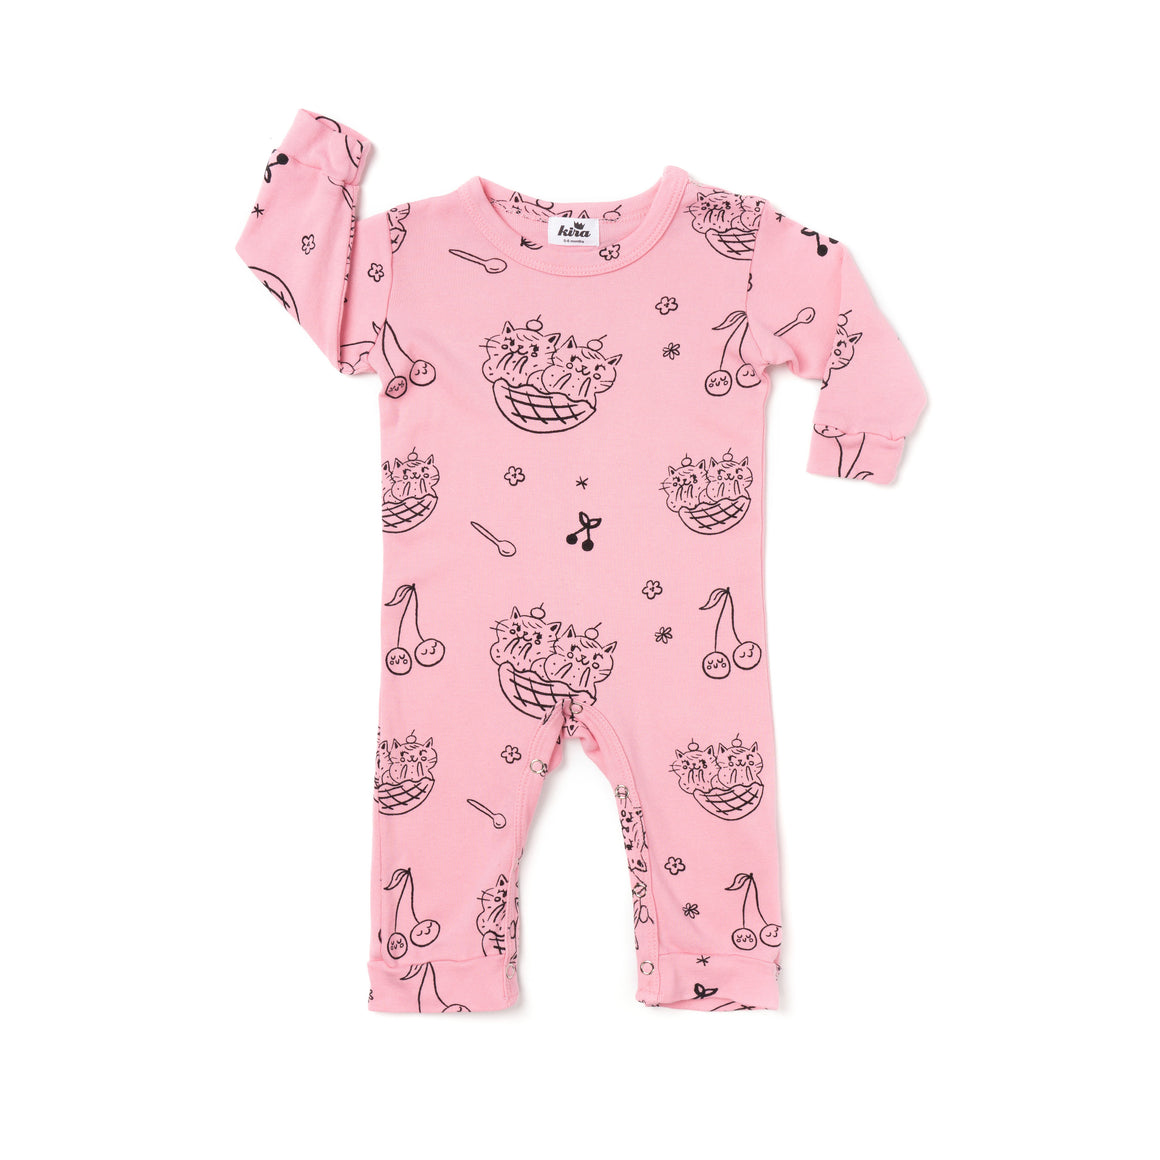 Cat Sundae Print Romper, Long Sleeve, Sweet Heart